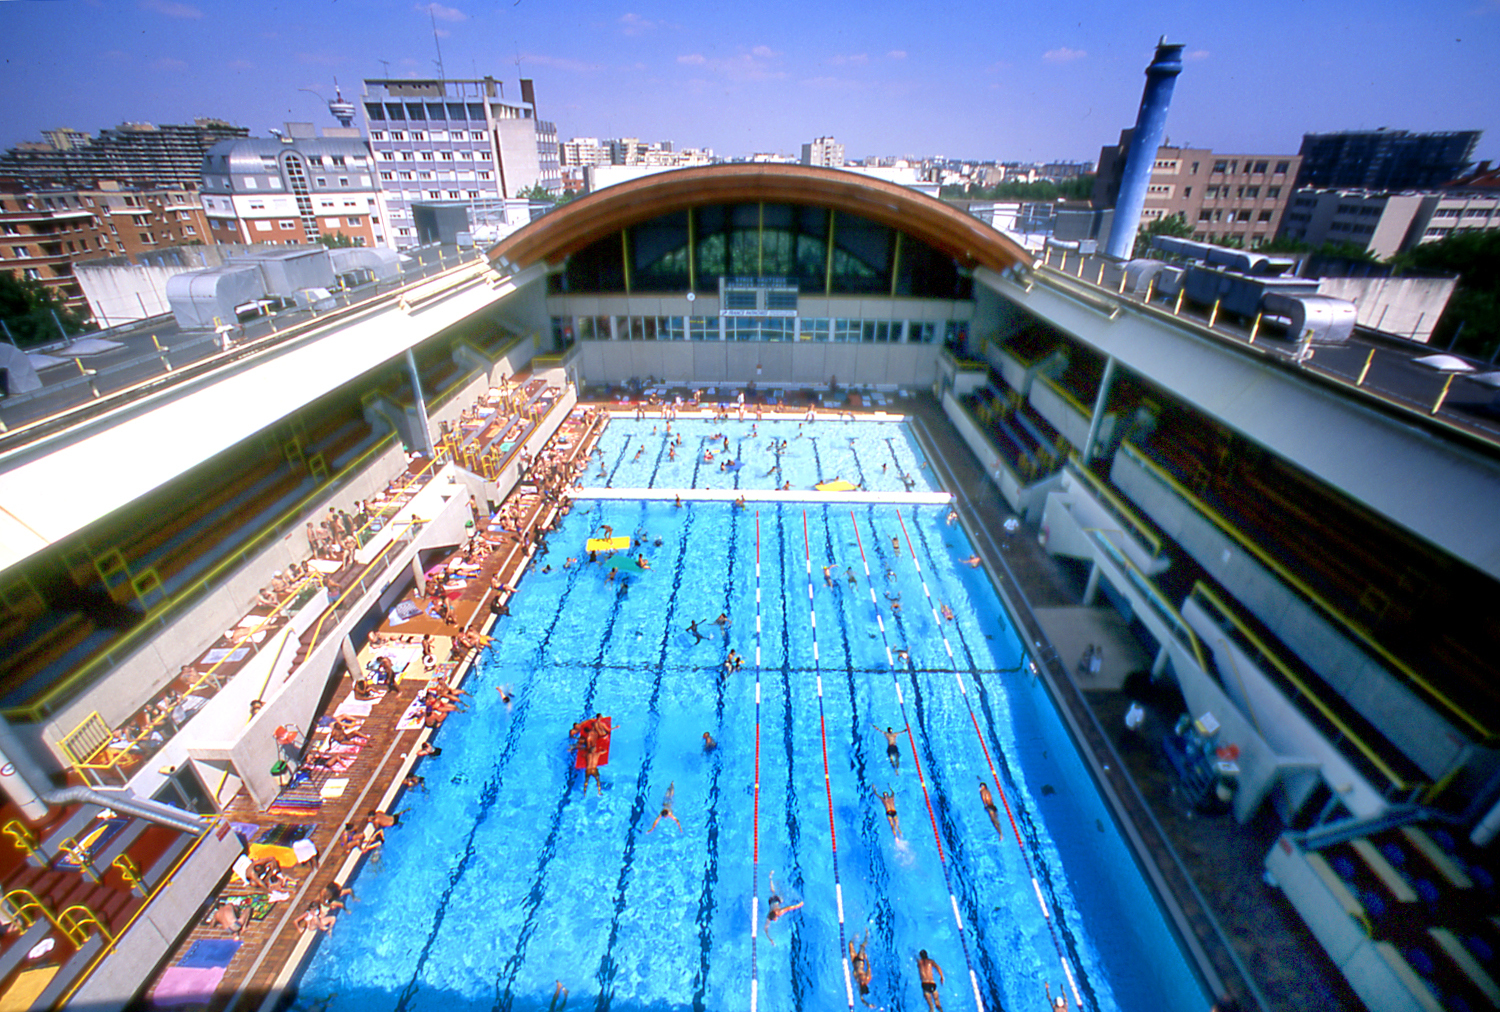 Piscines top 10 des piscines pour nager paris cet t time out paris - Piscine st ouen ...